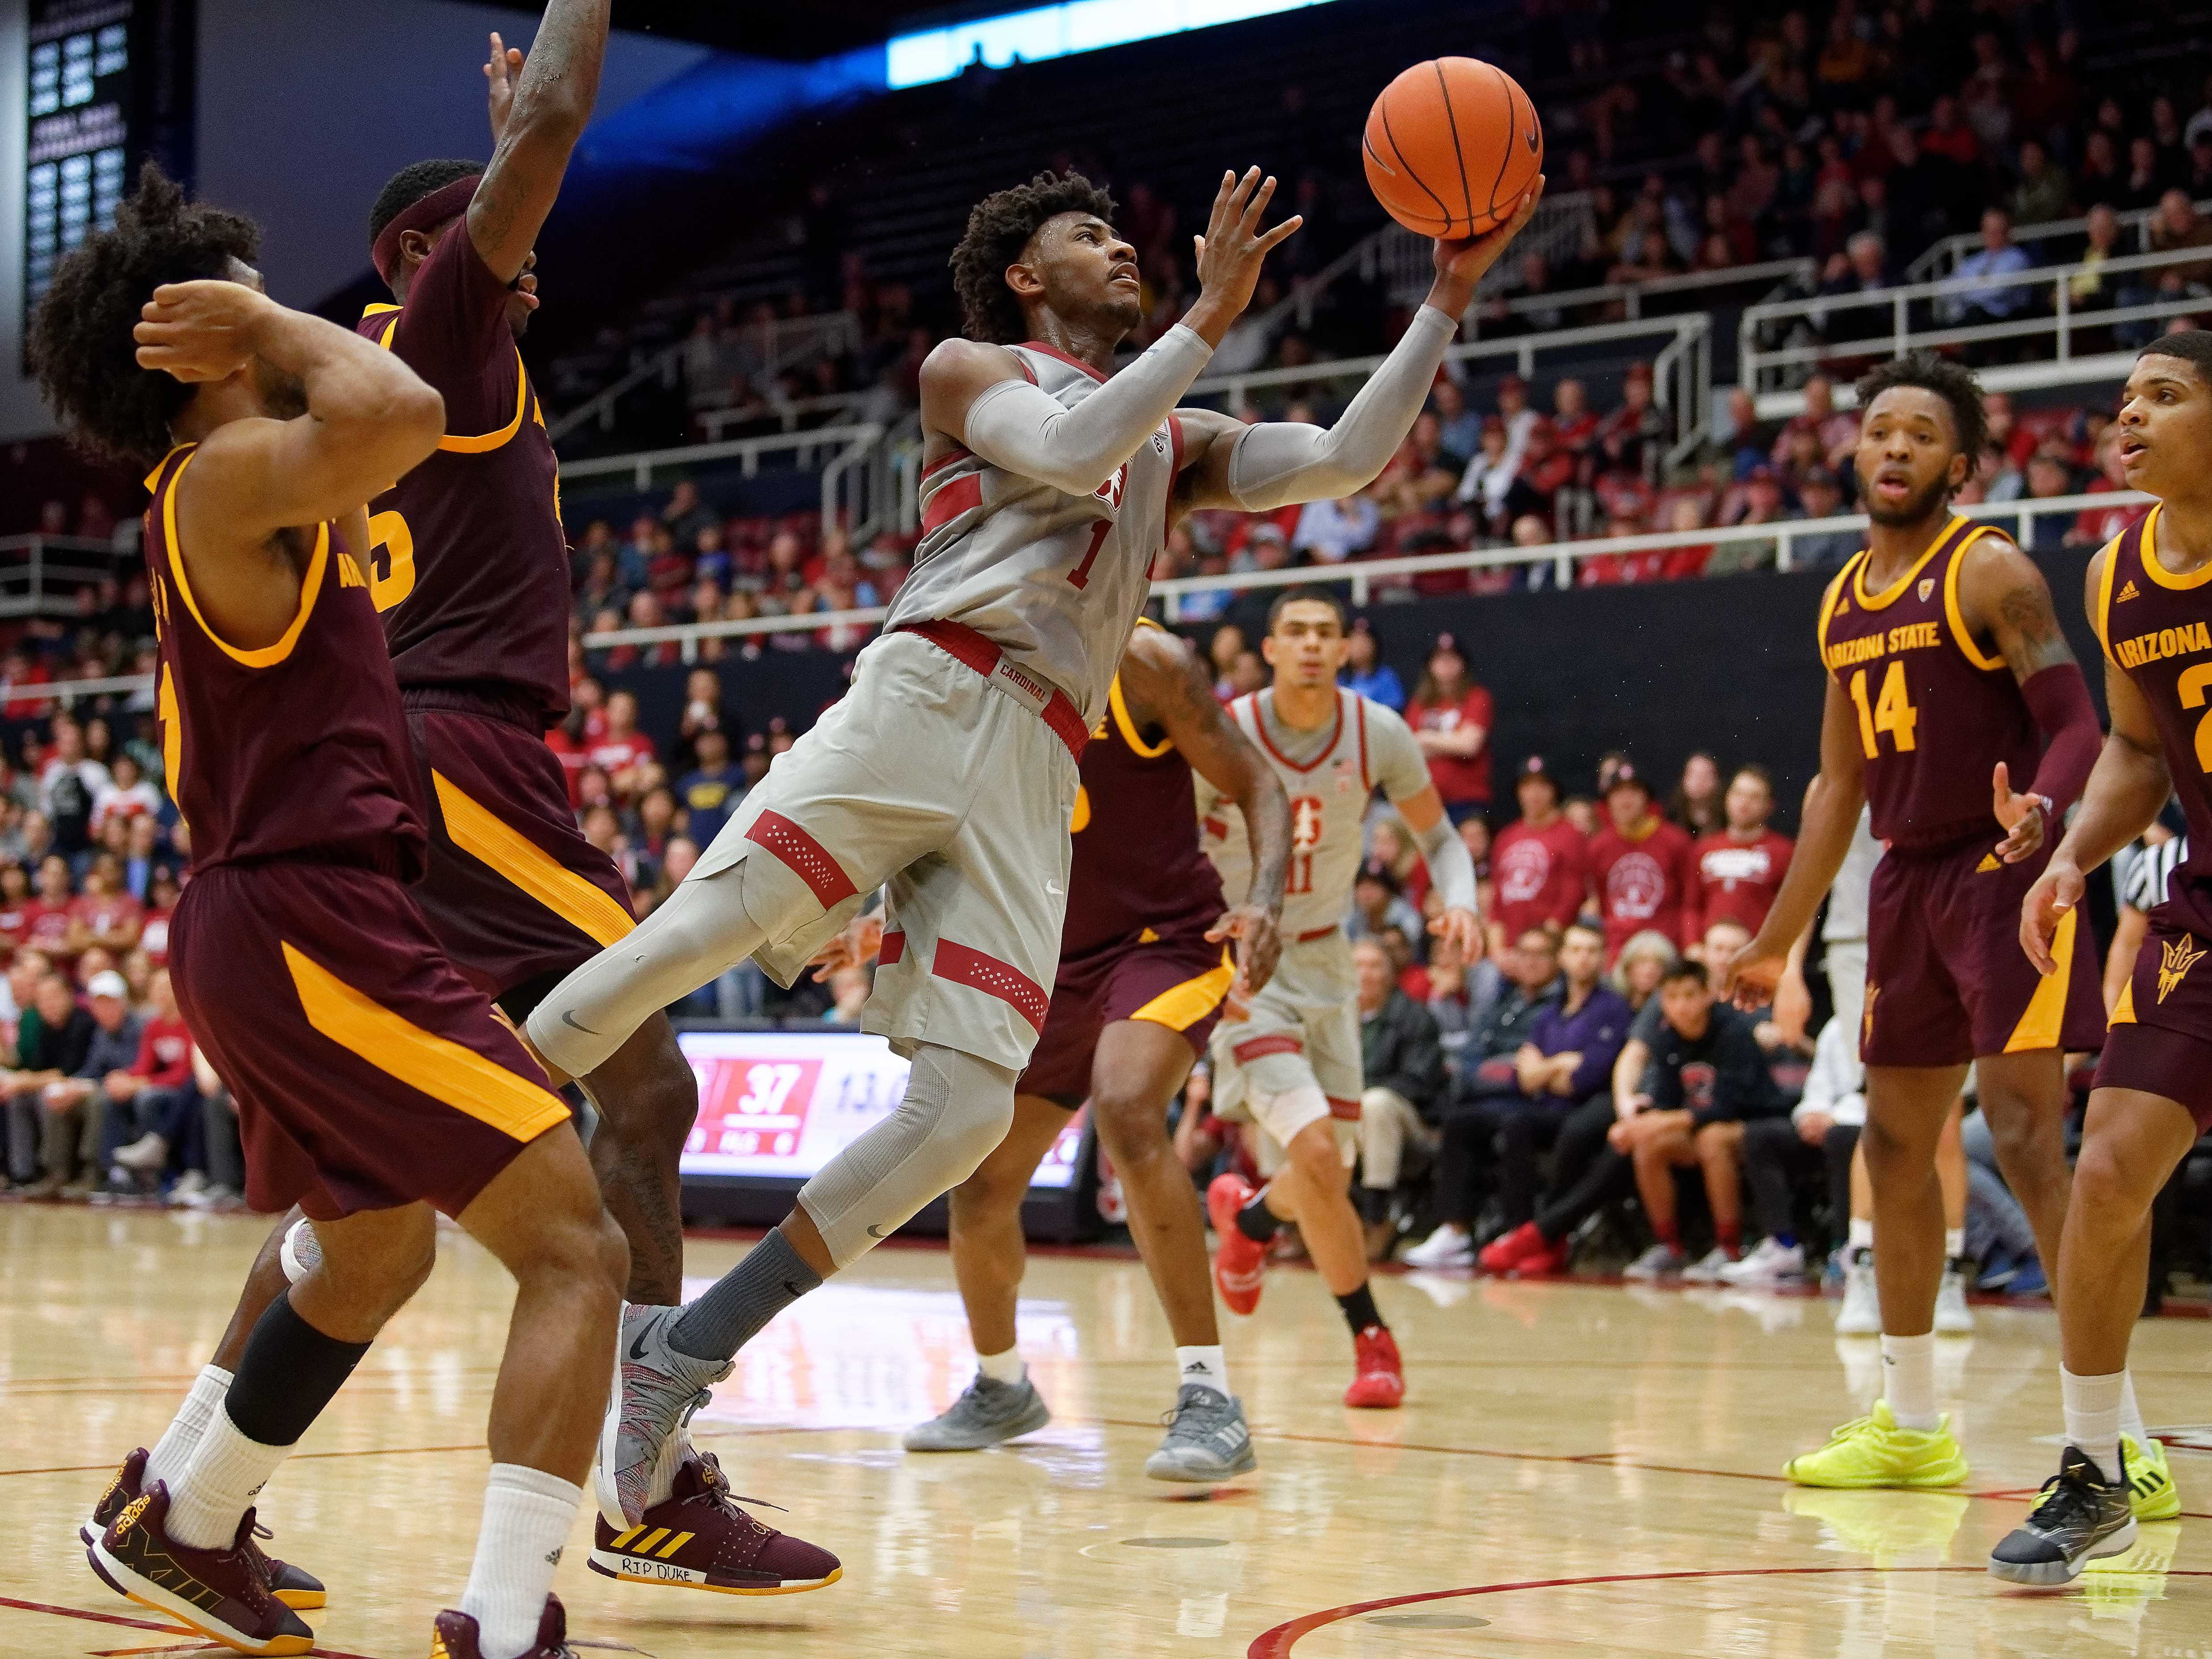 Jan 12, 2019; Stanford, CA, USA; Stanford Cardinal guard Daejon Davis (1) drives to the basket during the first half of the Stanford Cardinal vs Arizona State Sun Devils basketball game at Maples Pavilion. Mandatory Credit: Robert Edwards-USA TODAY Sports